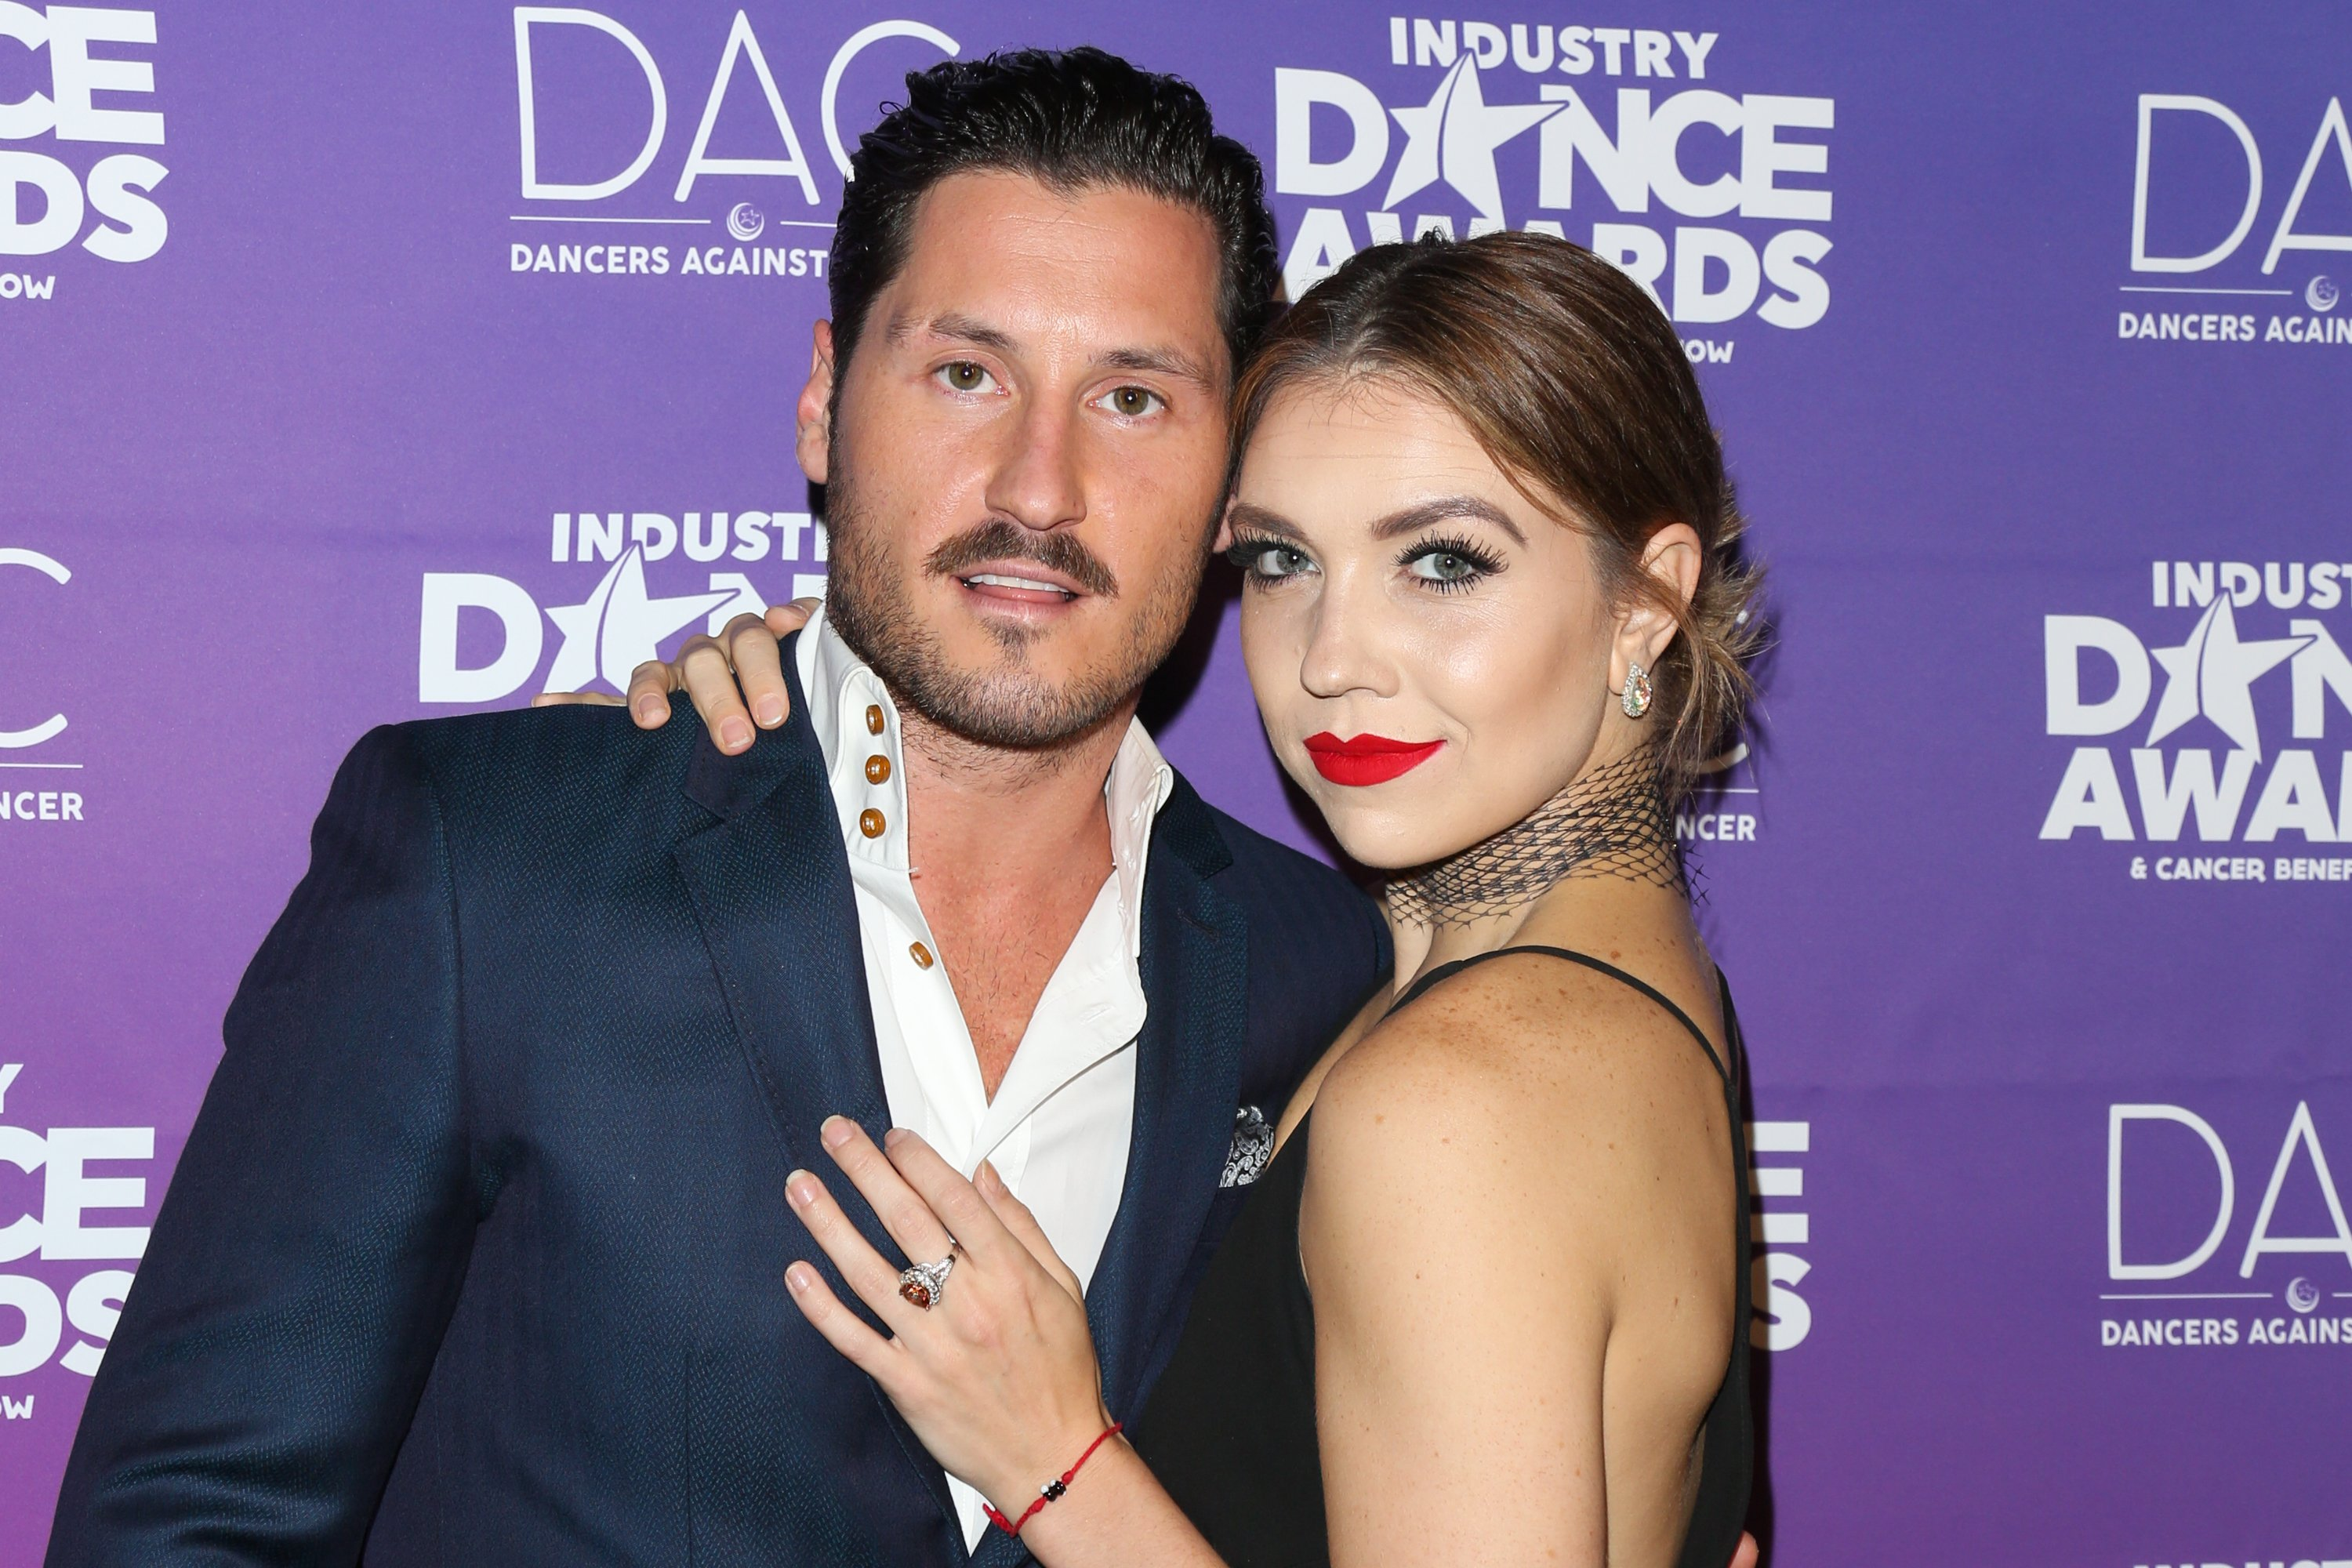 Val Chmerkovskiy and his wife, Jenna Johnson attending the 2017 Industry Dance Awards in Hollywood, on August 16, 2017. | Photo: Getty Images.